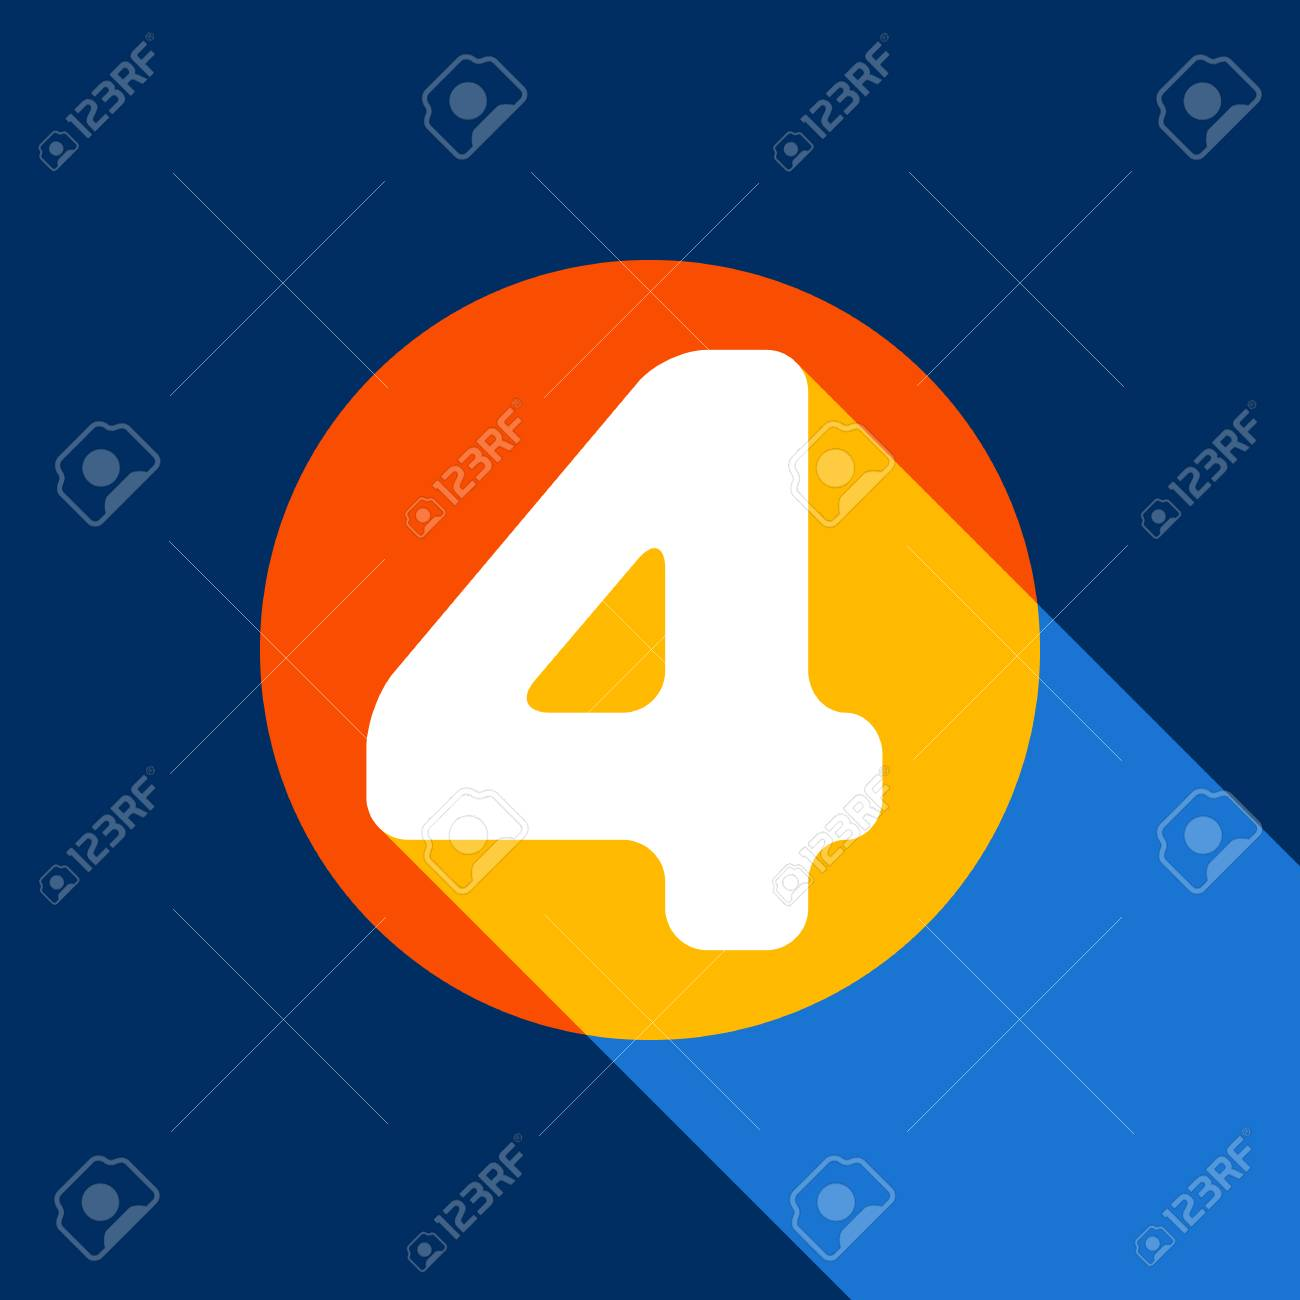 Number 4 sign design template element. Vector. White icon on tangelo circle with infinite shadow of light at cool black background. Selective yellow and bright navy blue are produced. - 90133841